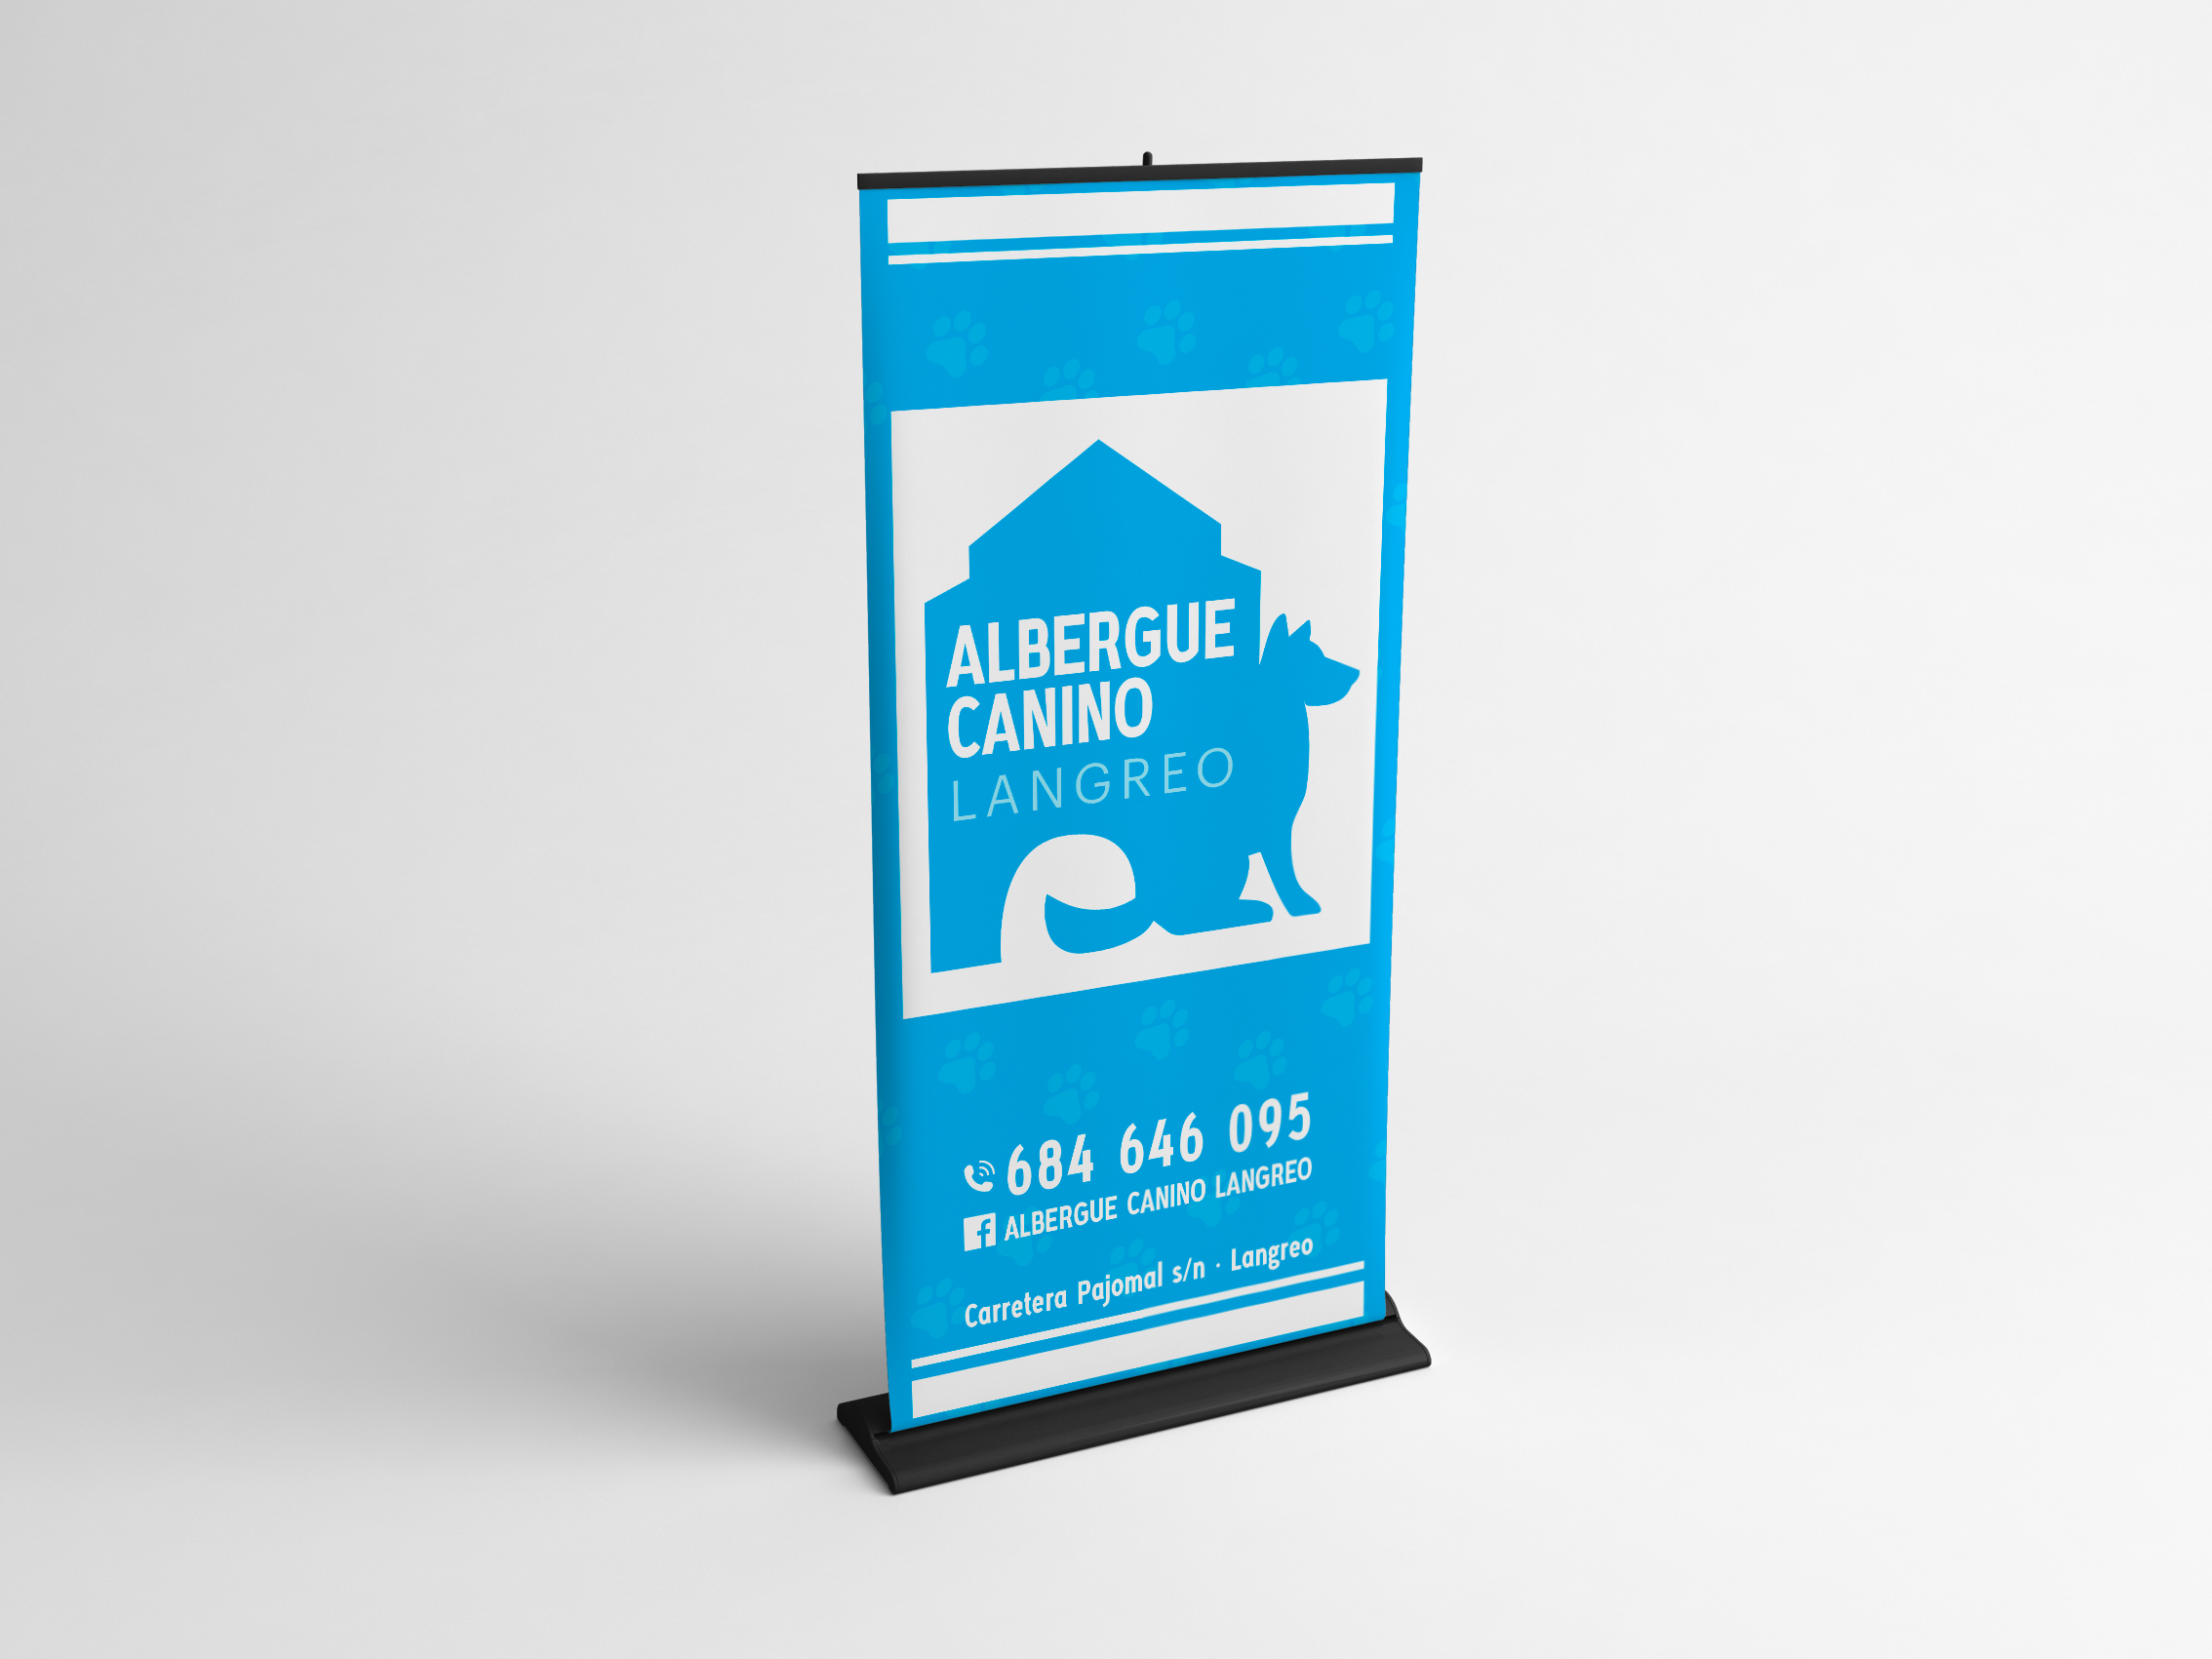 Rollup Albergue Canino Langreo